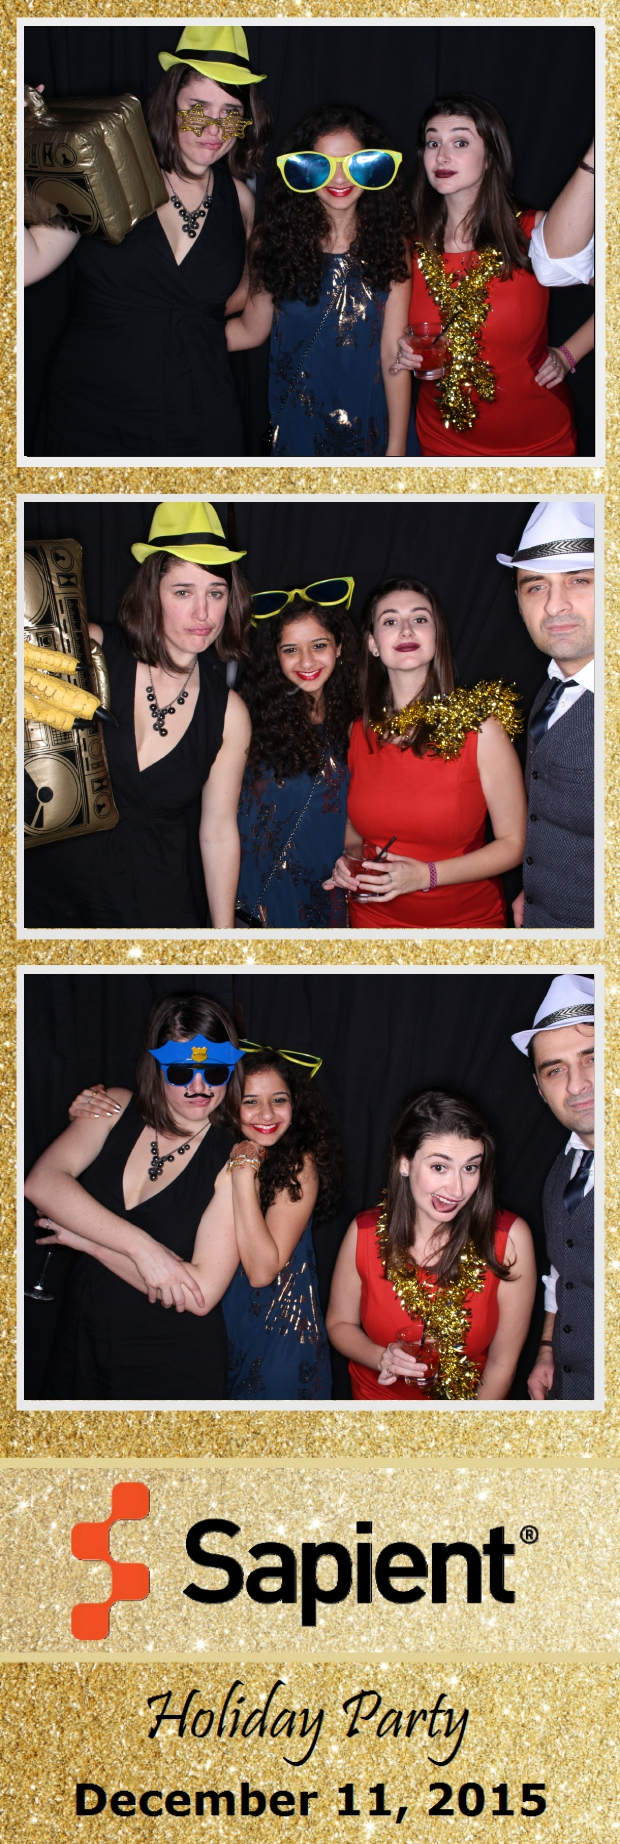 Guest House Events Photo Booth Sapient Holiday Party (97).jpg